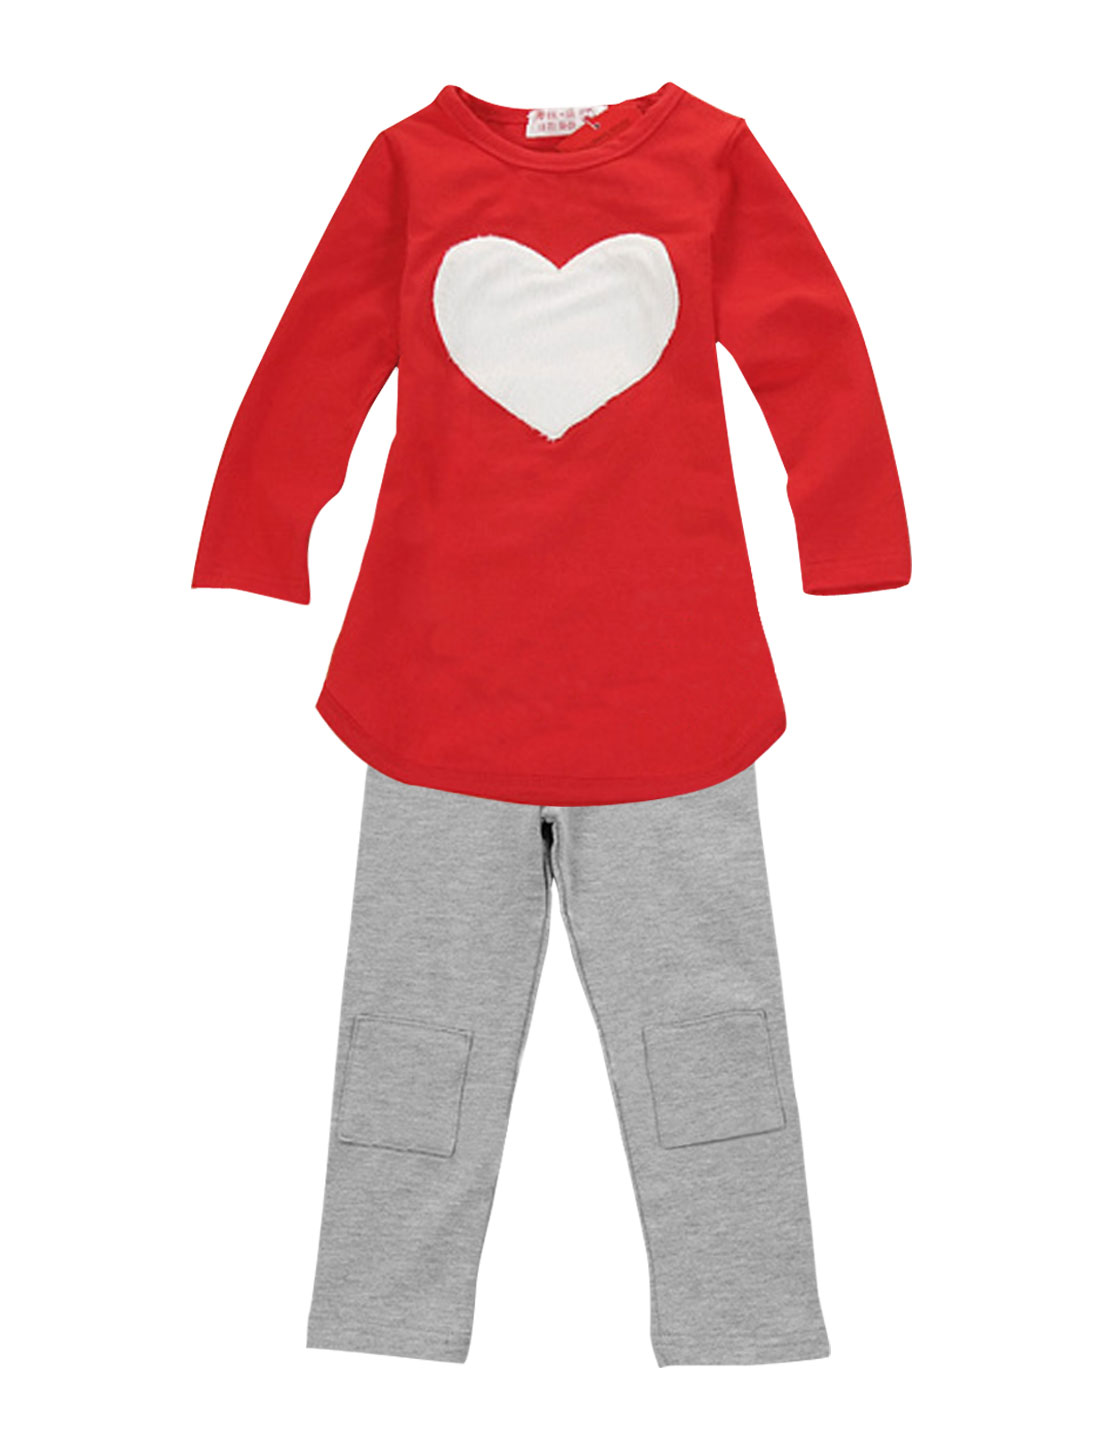 Girls Heart Shape Panel Top w Elastic Waist Pants 3-Pieces Sets Red Gray 4T